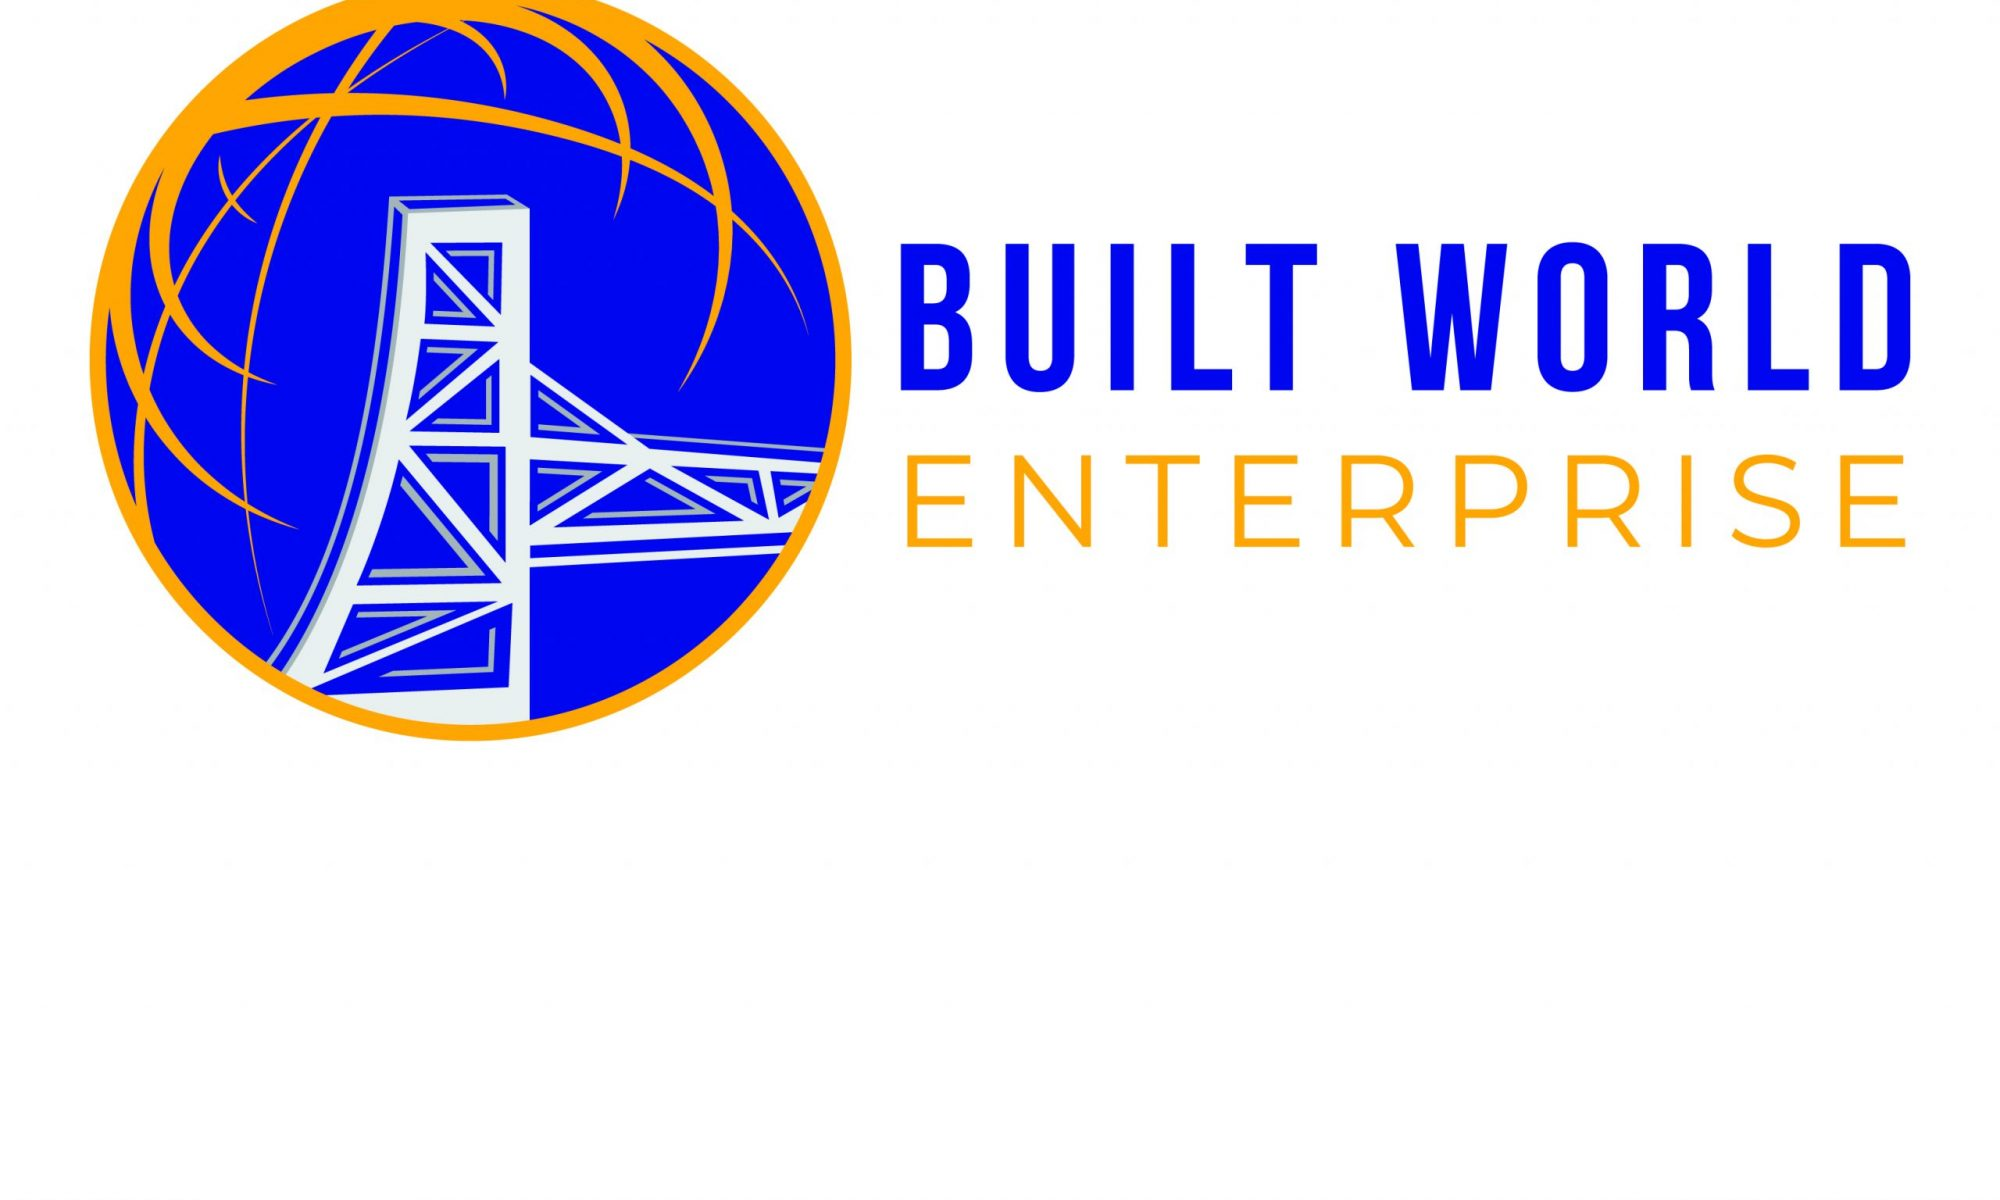 Built World Enterprise